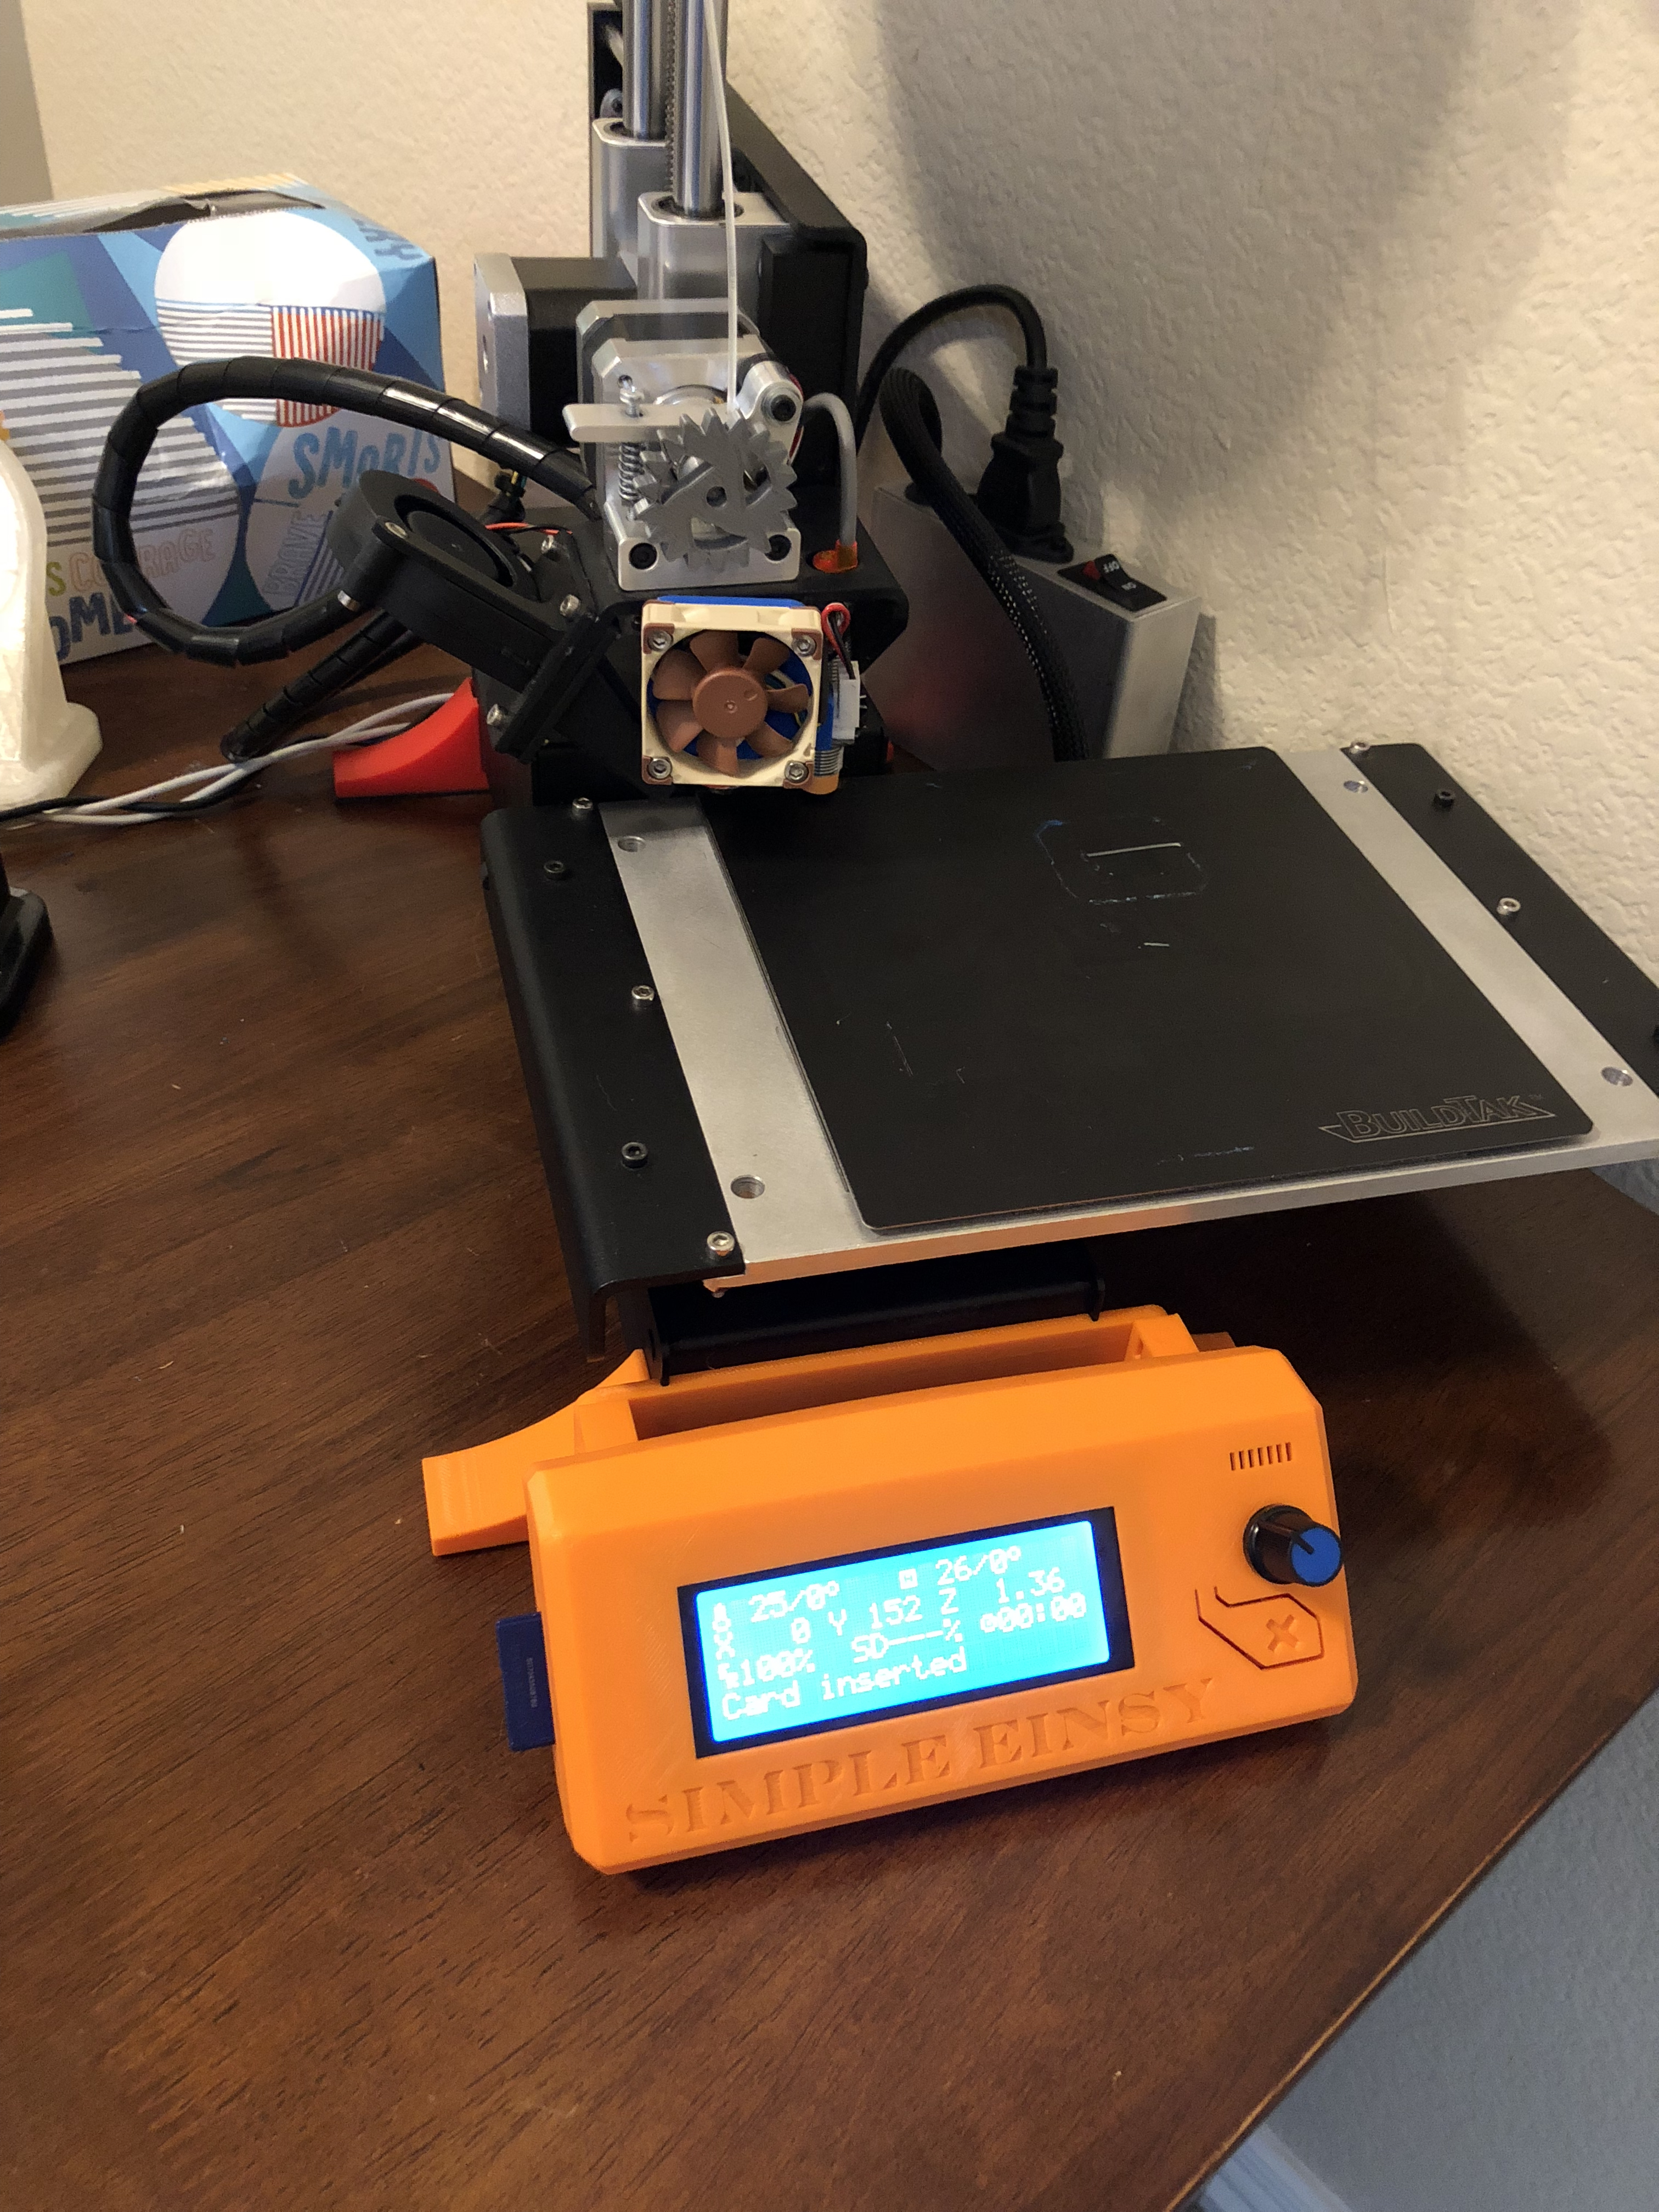 Printrbot simple metal adapter for an einsy rambo board  by